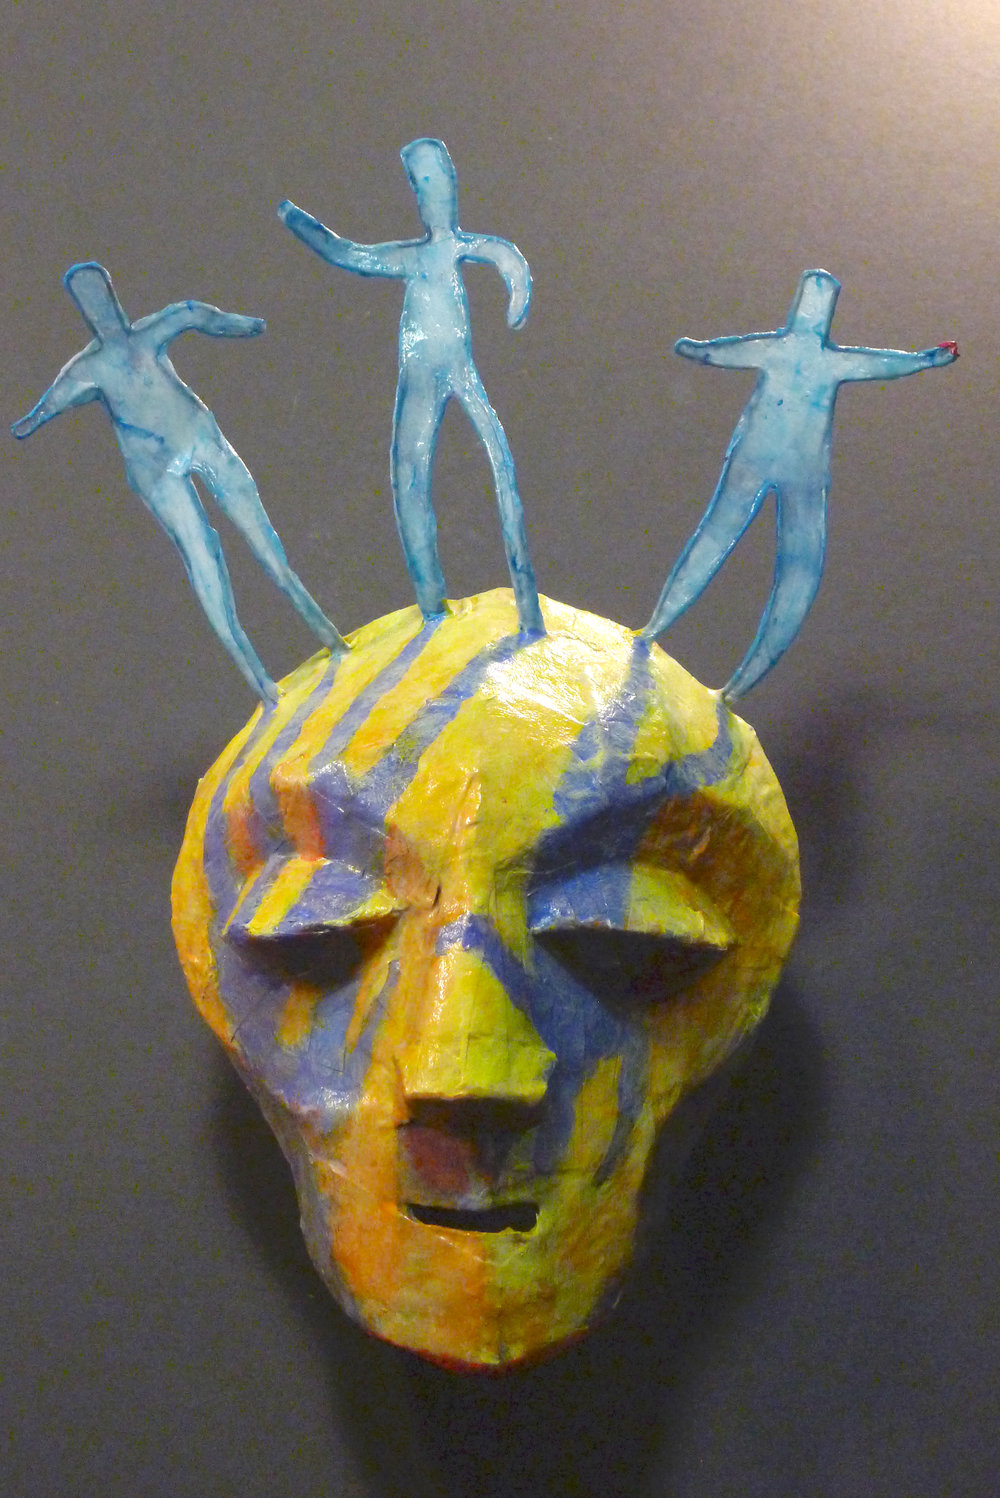 My Three Shadows - Mixed media mask